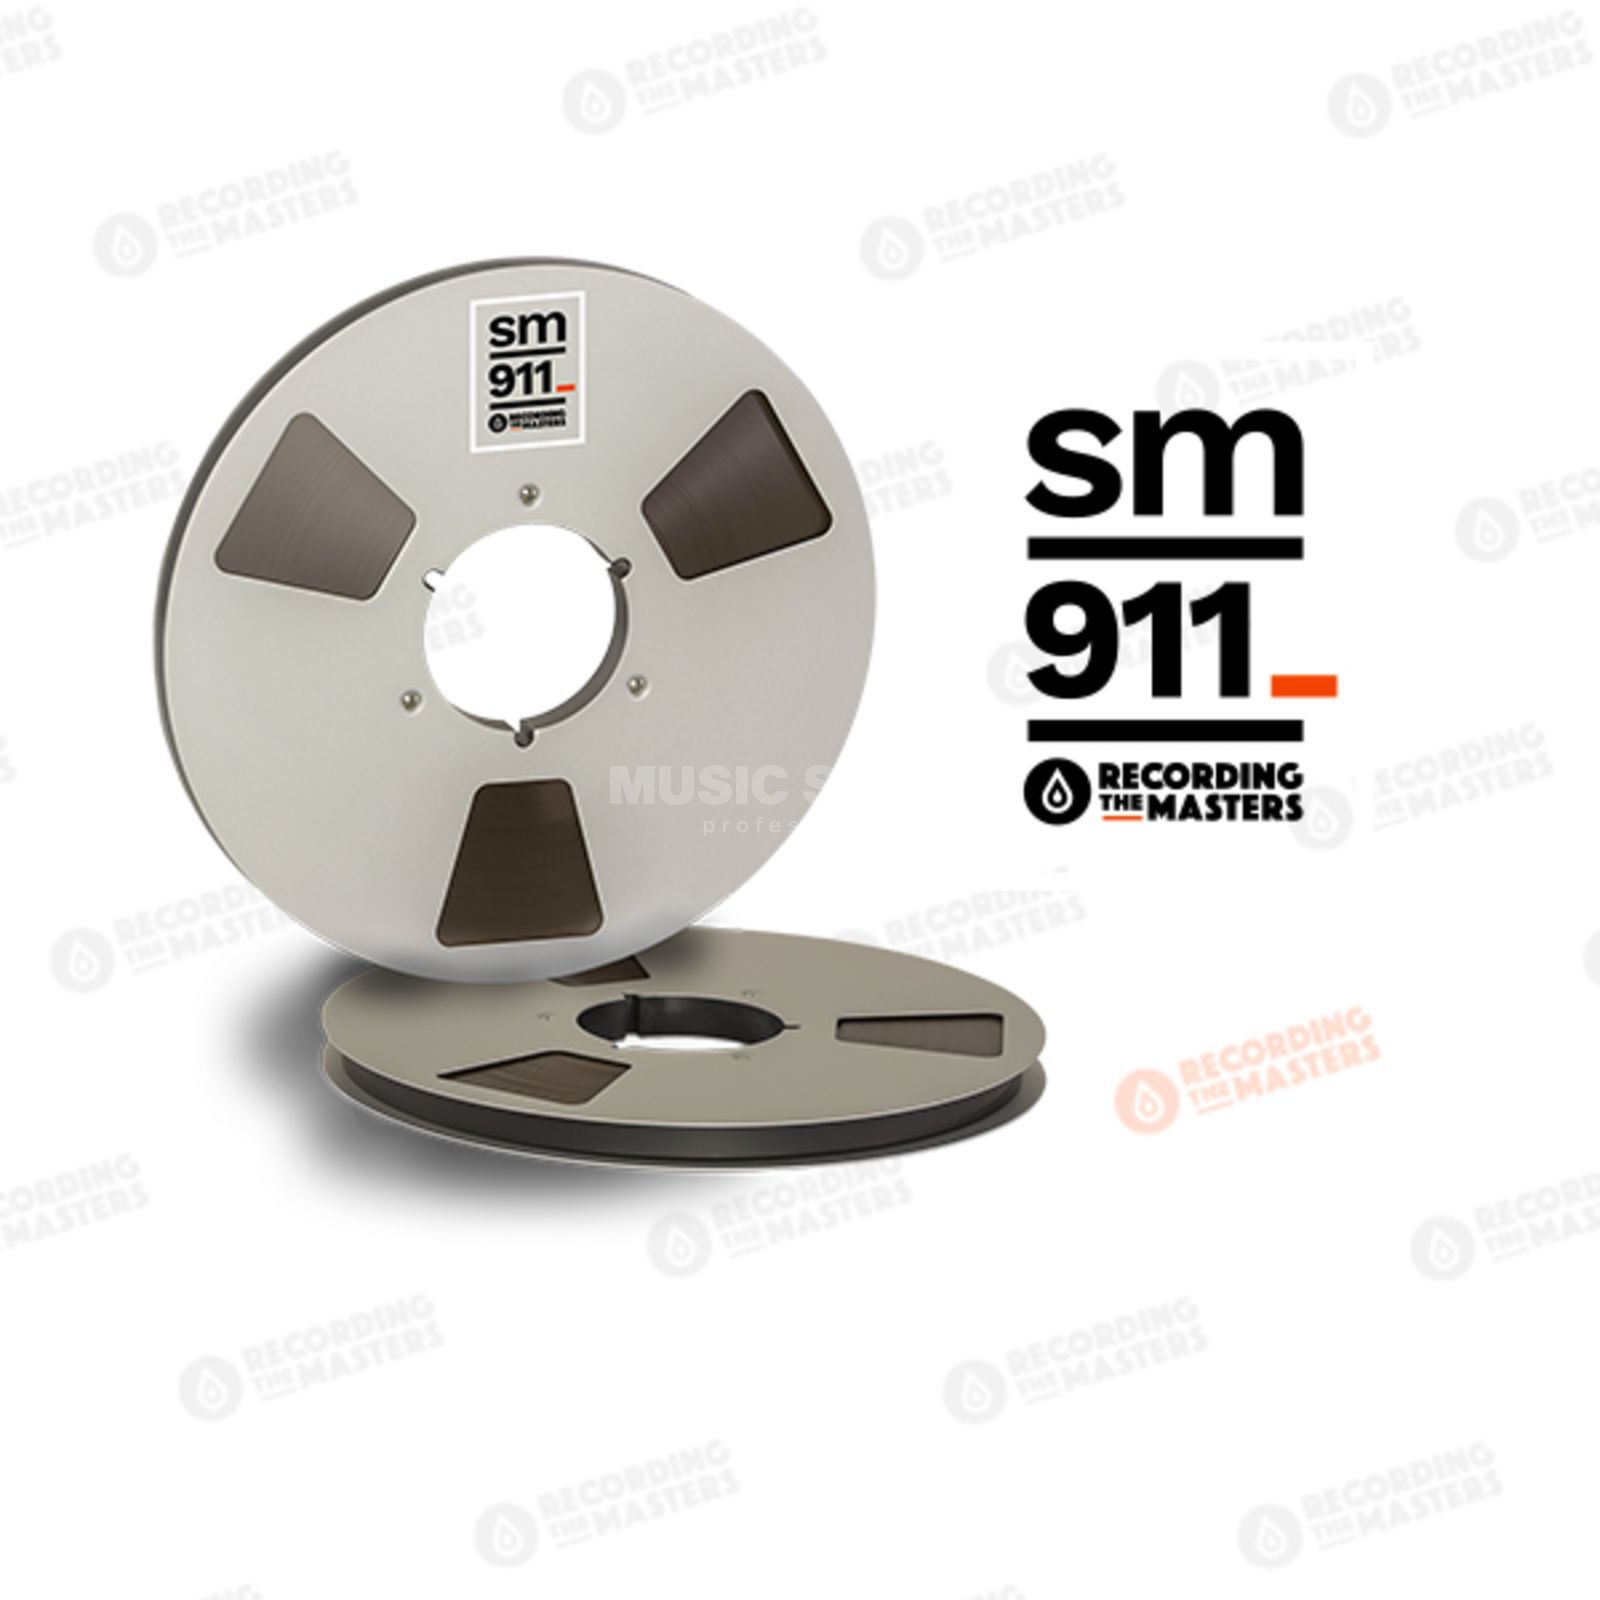 "Recording The Masters SM911 1/2"" 762m Analog Band NAB-Core /Metal Reel 27cm Produktbillede"